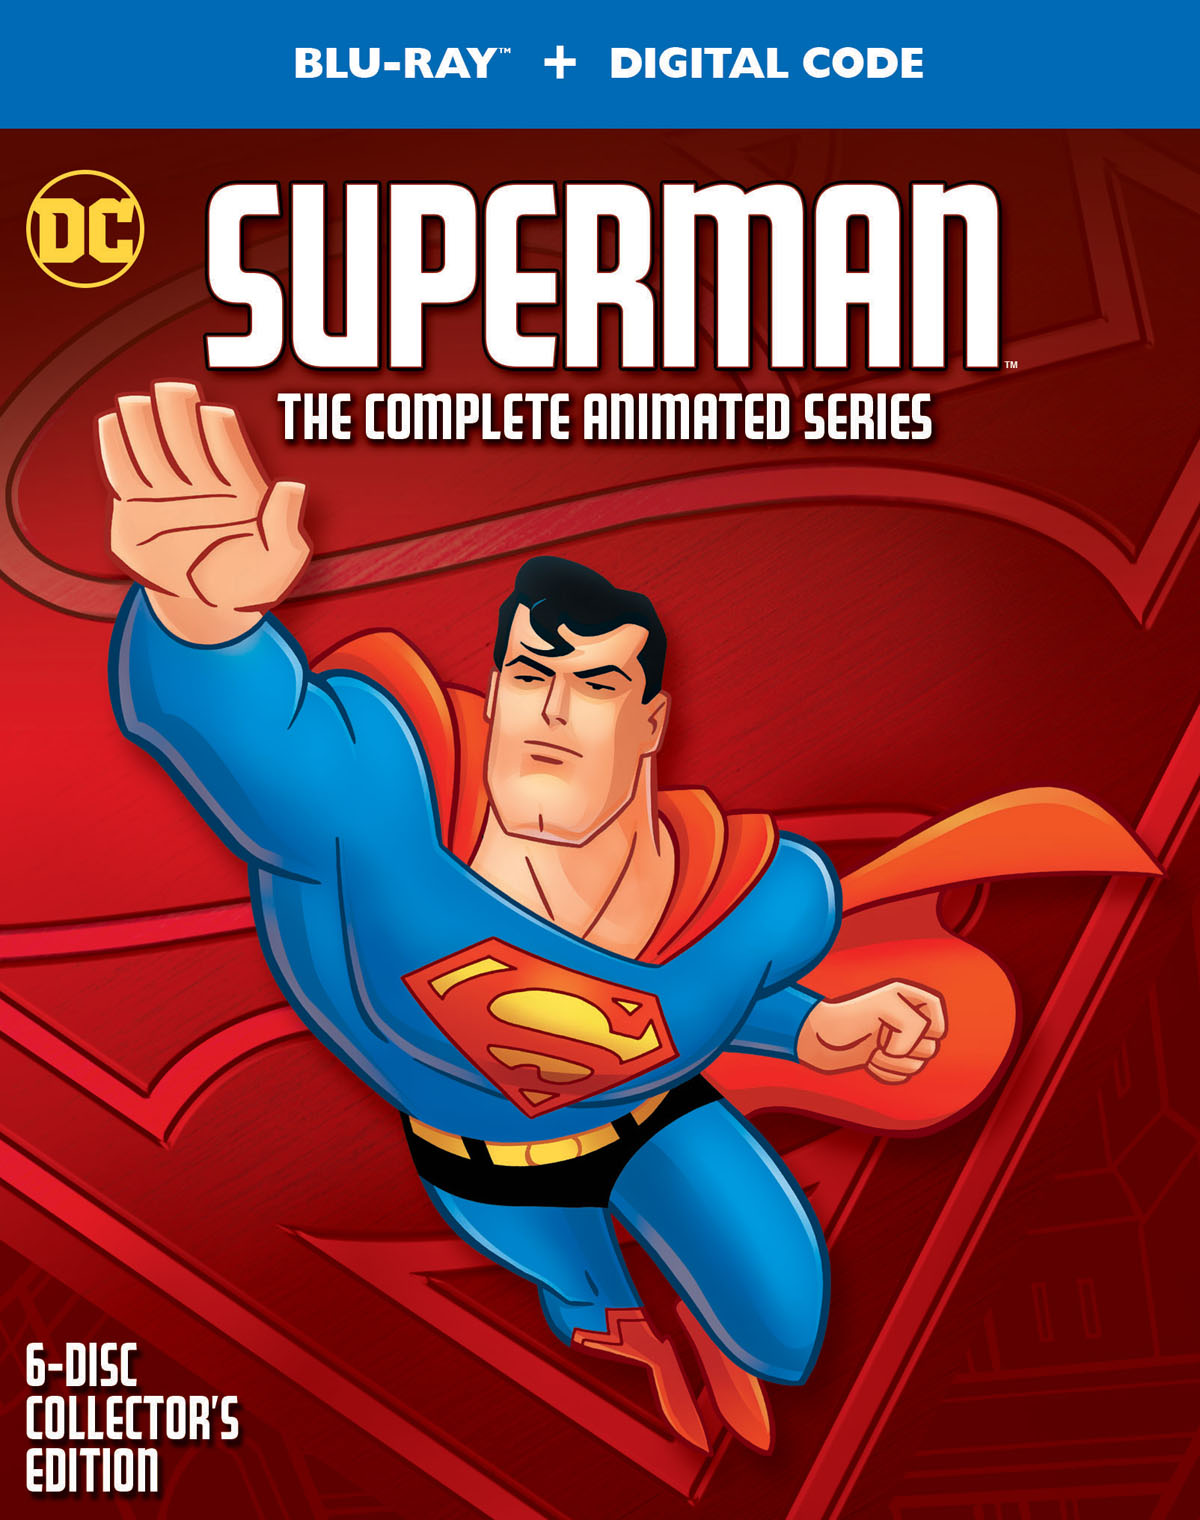 Superman: The Complete Animated Series Box Art and Extras